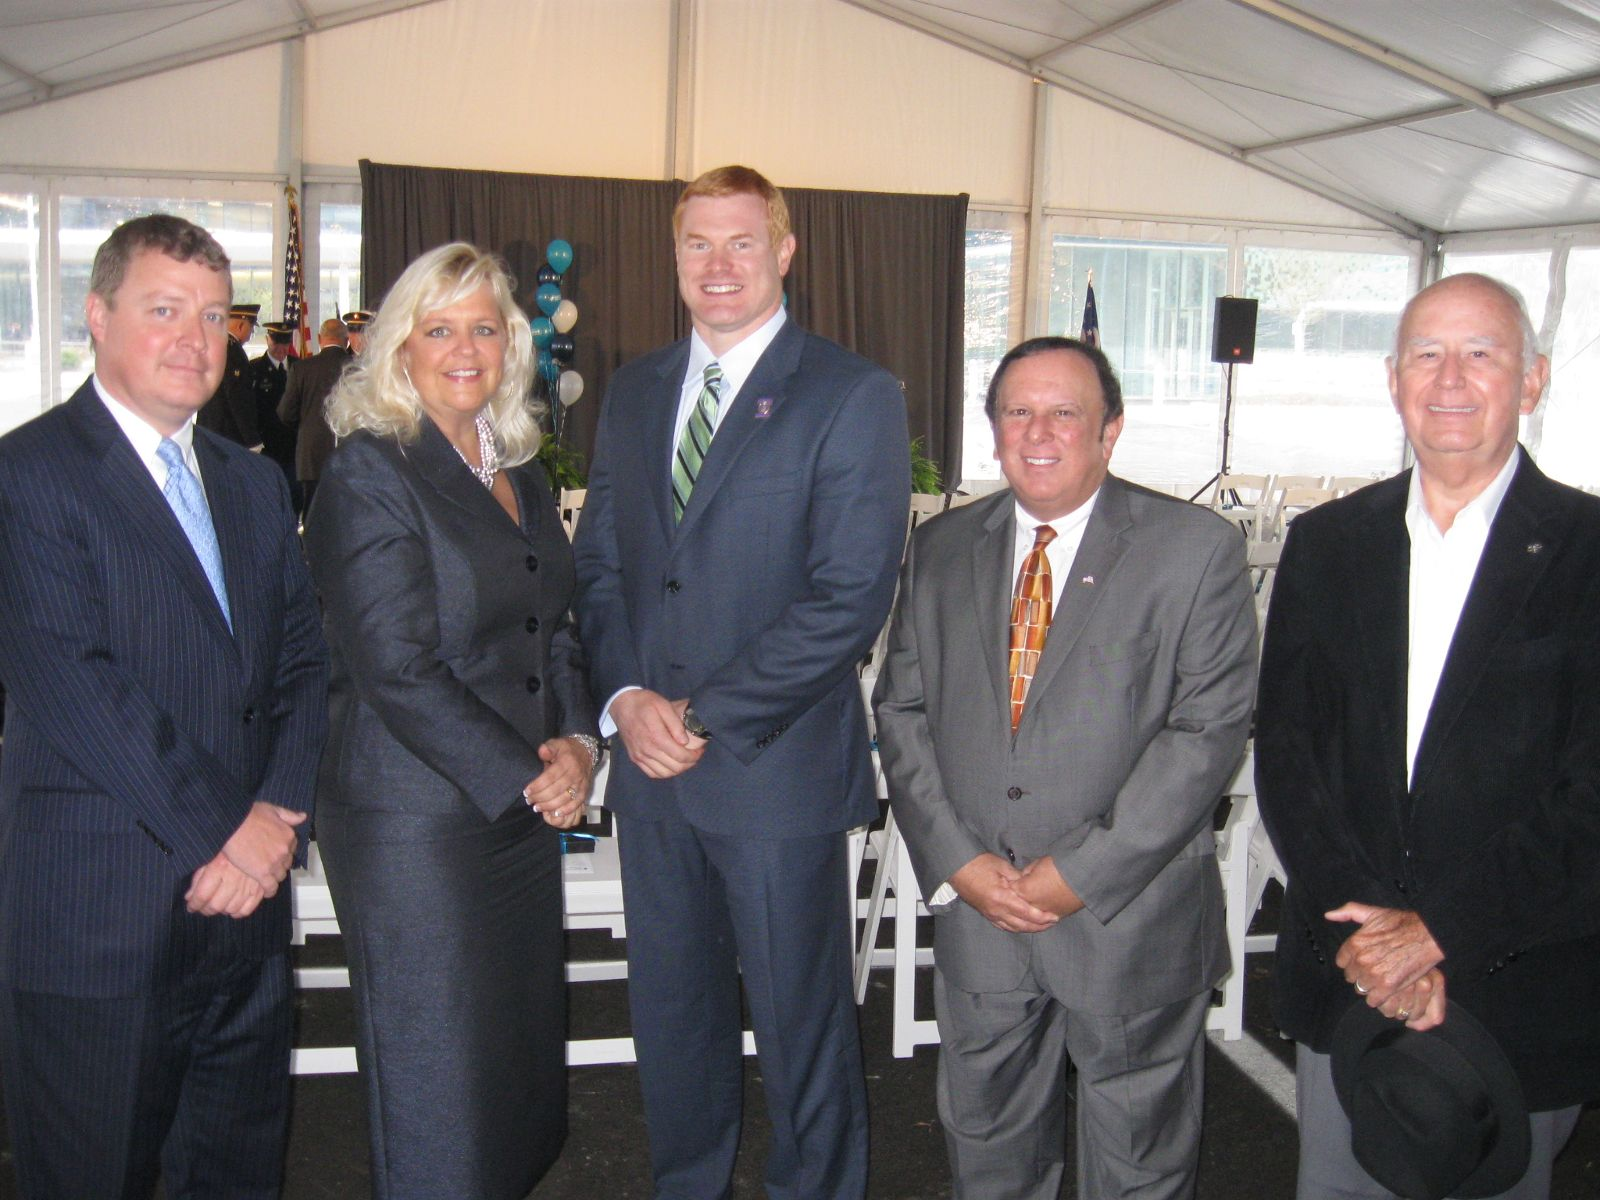 Image of Trustee David Linnenberg, Clerk of Courts Tracy Winkler, Trustee Rocky Boiman. Trustee Tony Rosiello and Former Green Township Trustee Tony Upton attend the ribbon cutting for the new Mercy Health - West Hospital